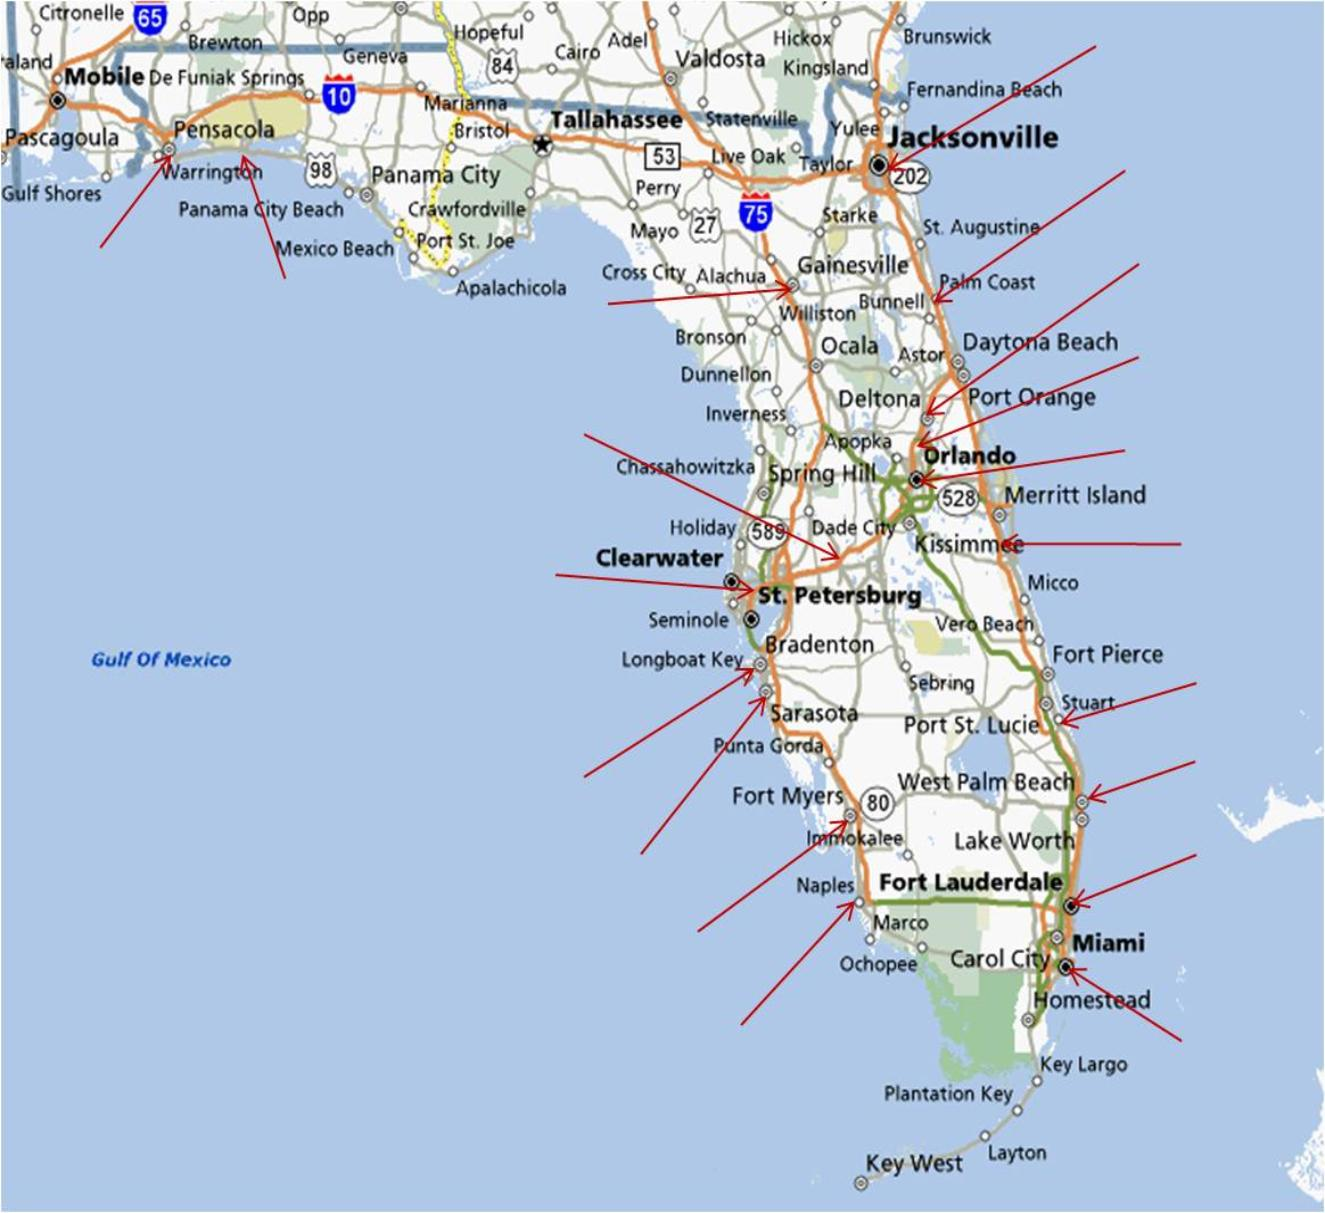 rosemary beach on florida map